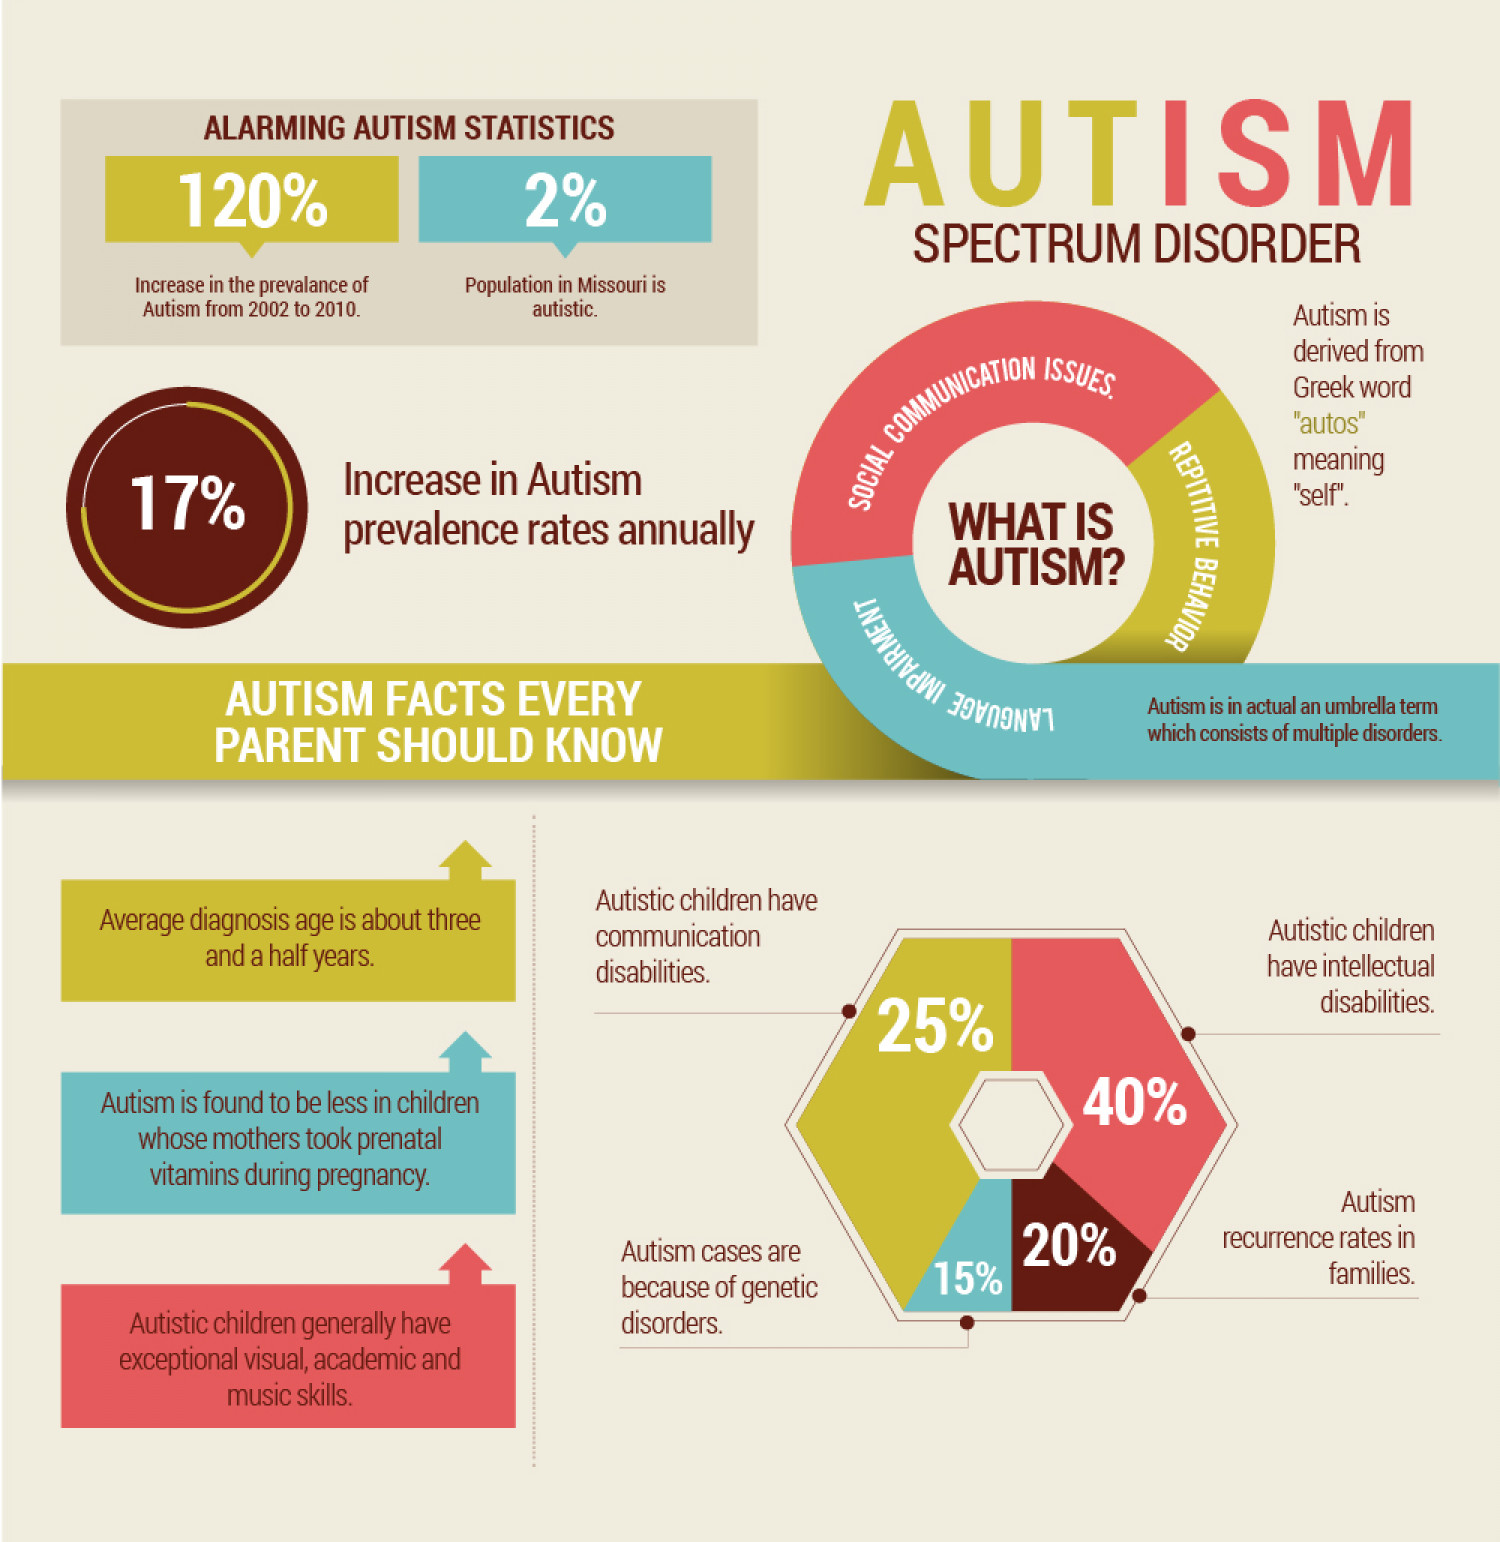 autism spectrum disorder quotes